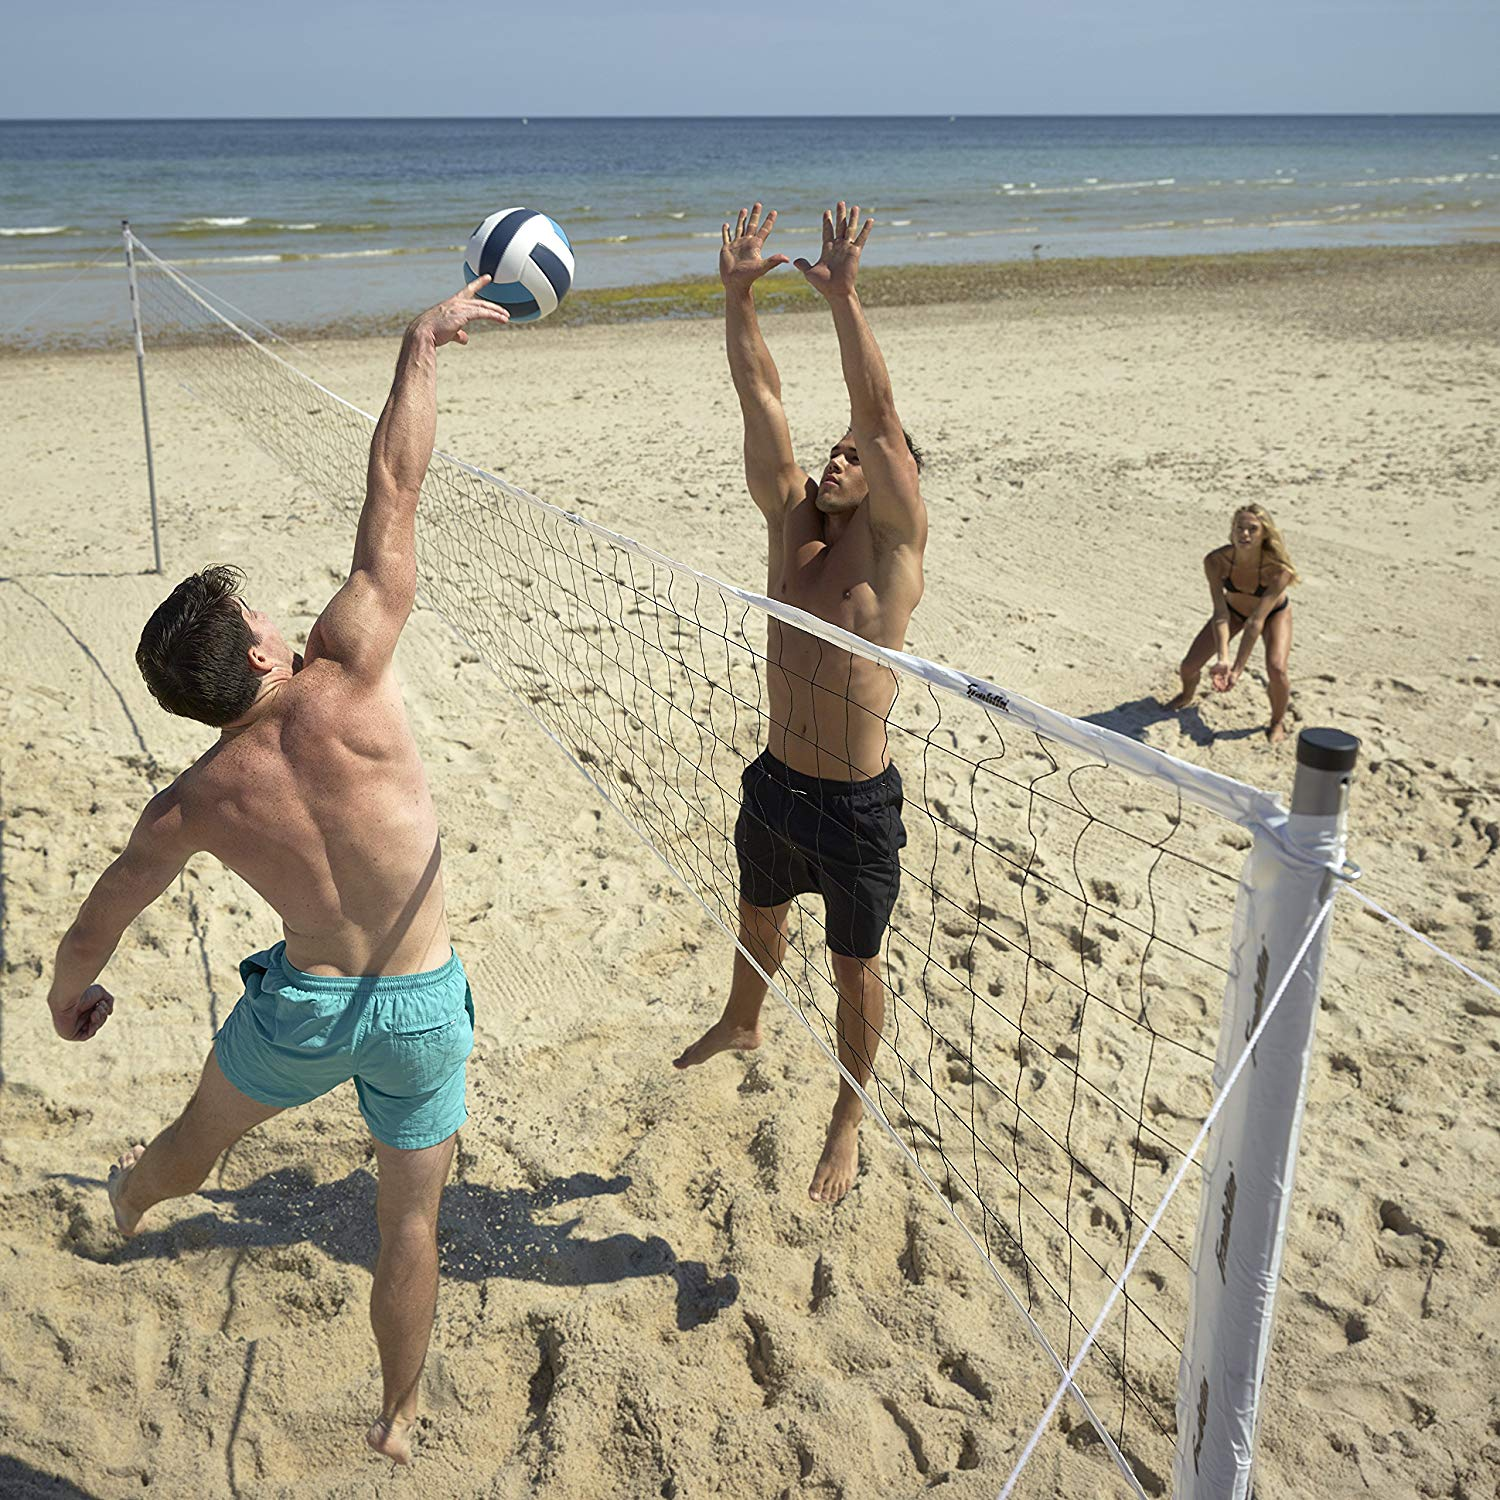 Franklin Sports Professional Series Steel Pole Volleyball System